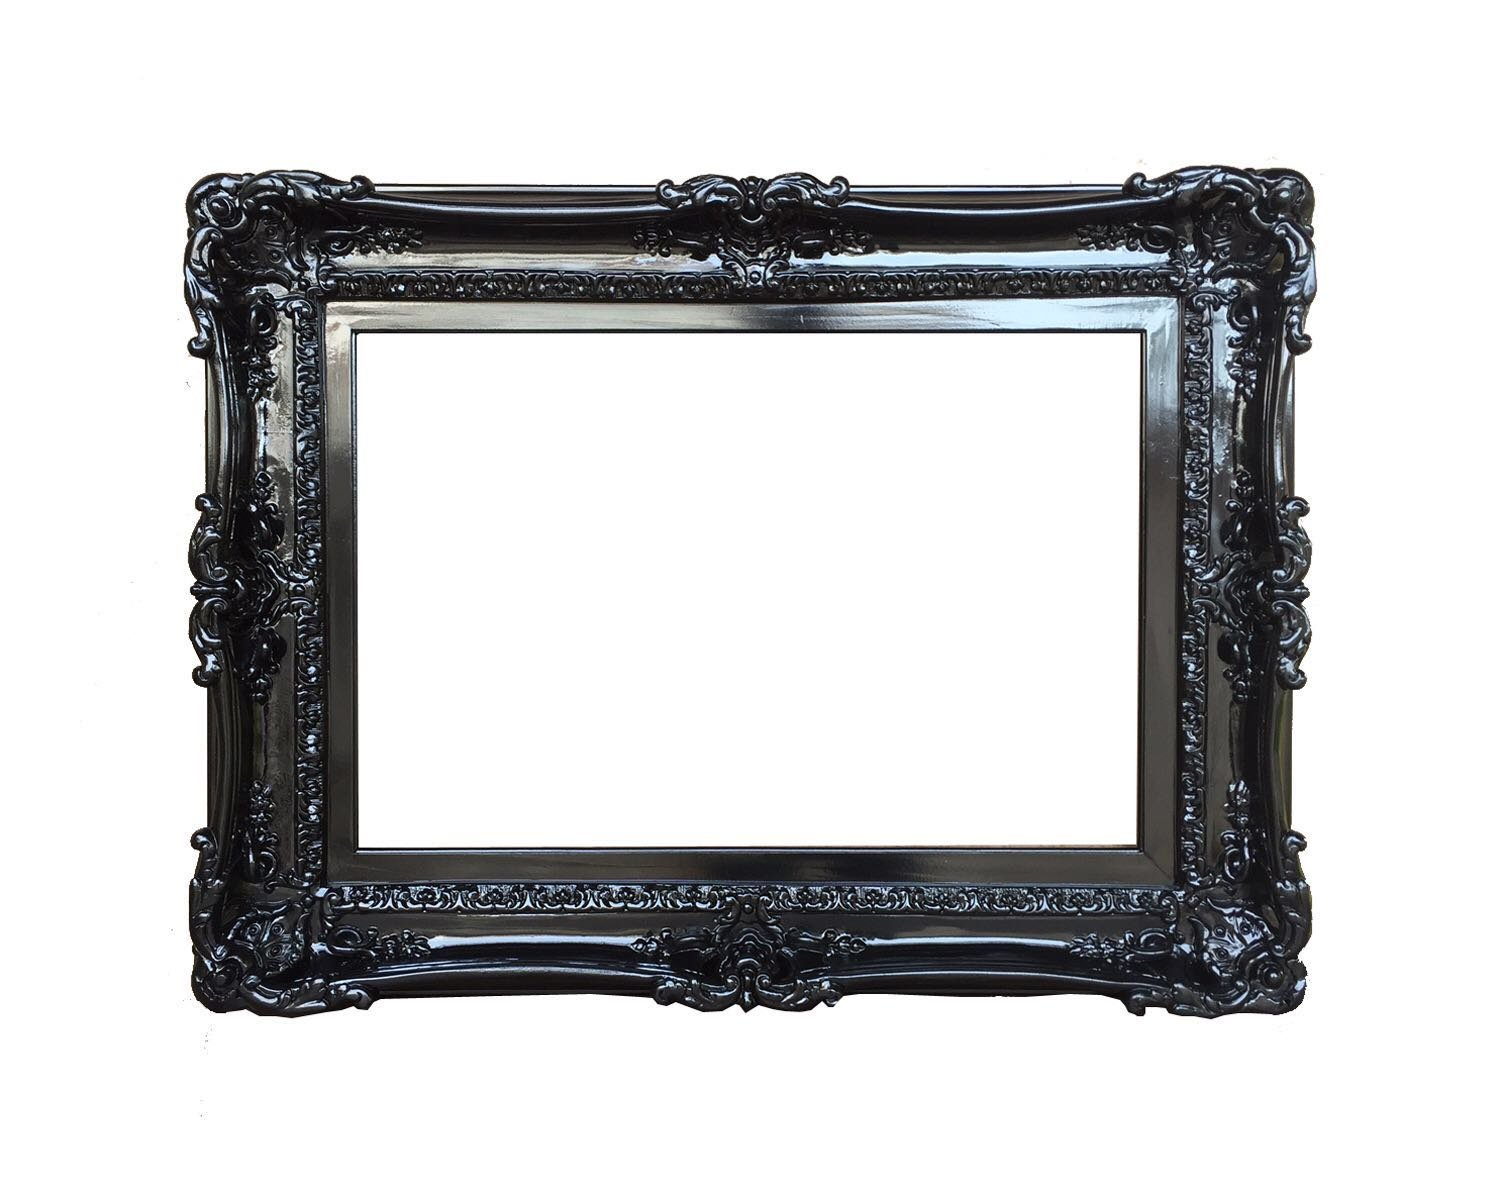 Amazon.com: 20x24 Baroque Black Frame - Ornate Wall Mirror - Shabby ...